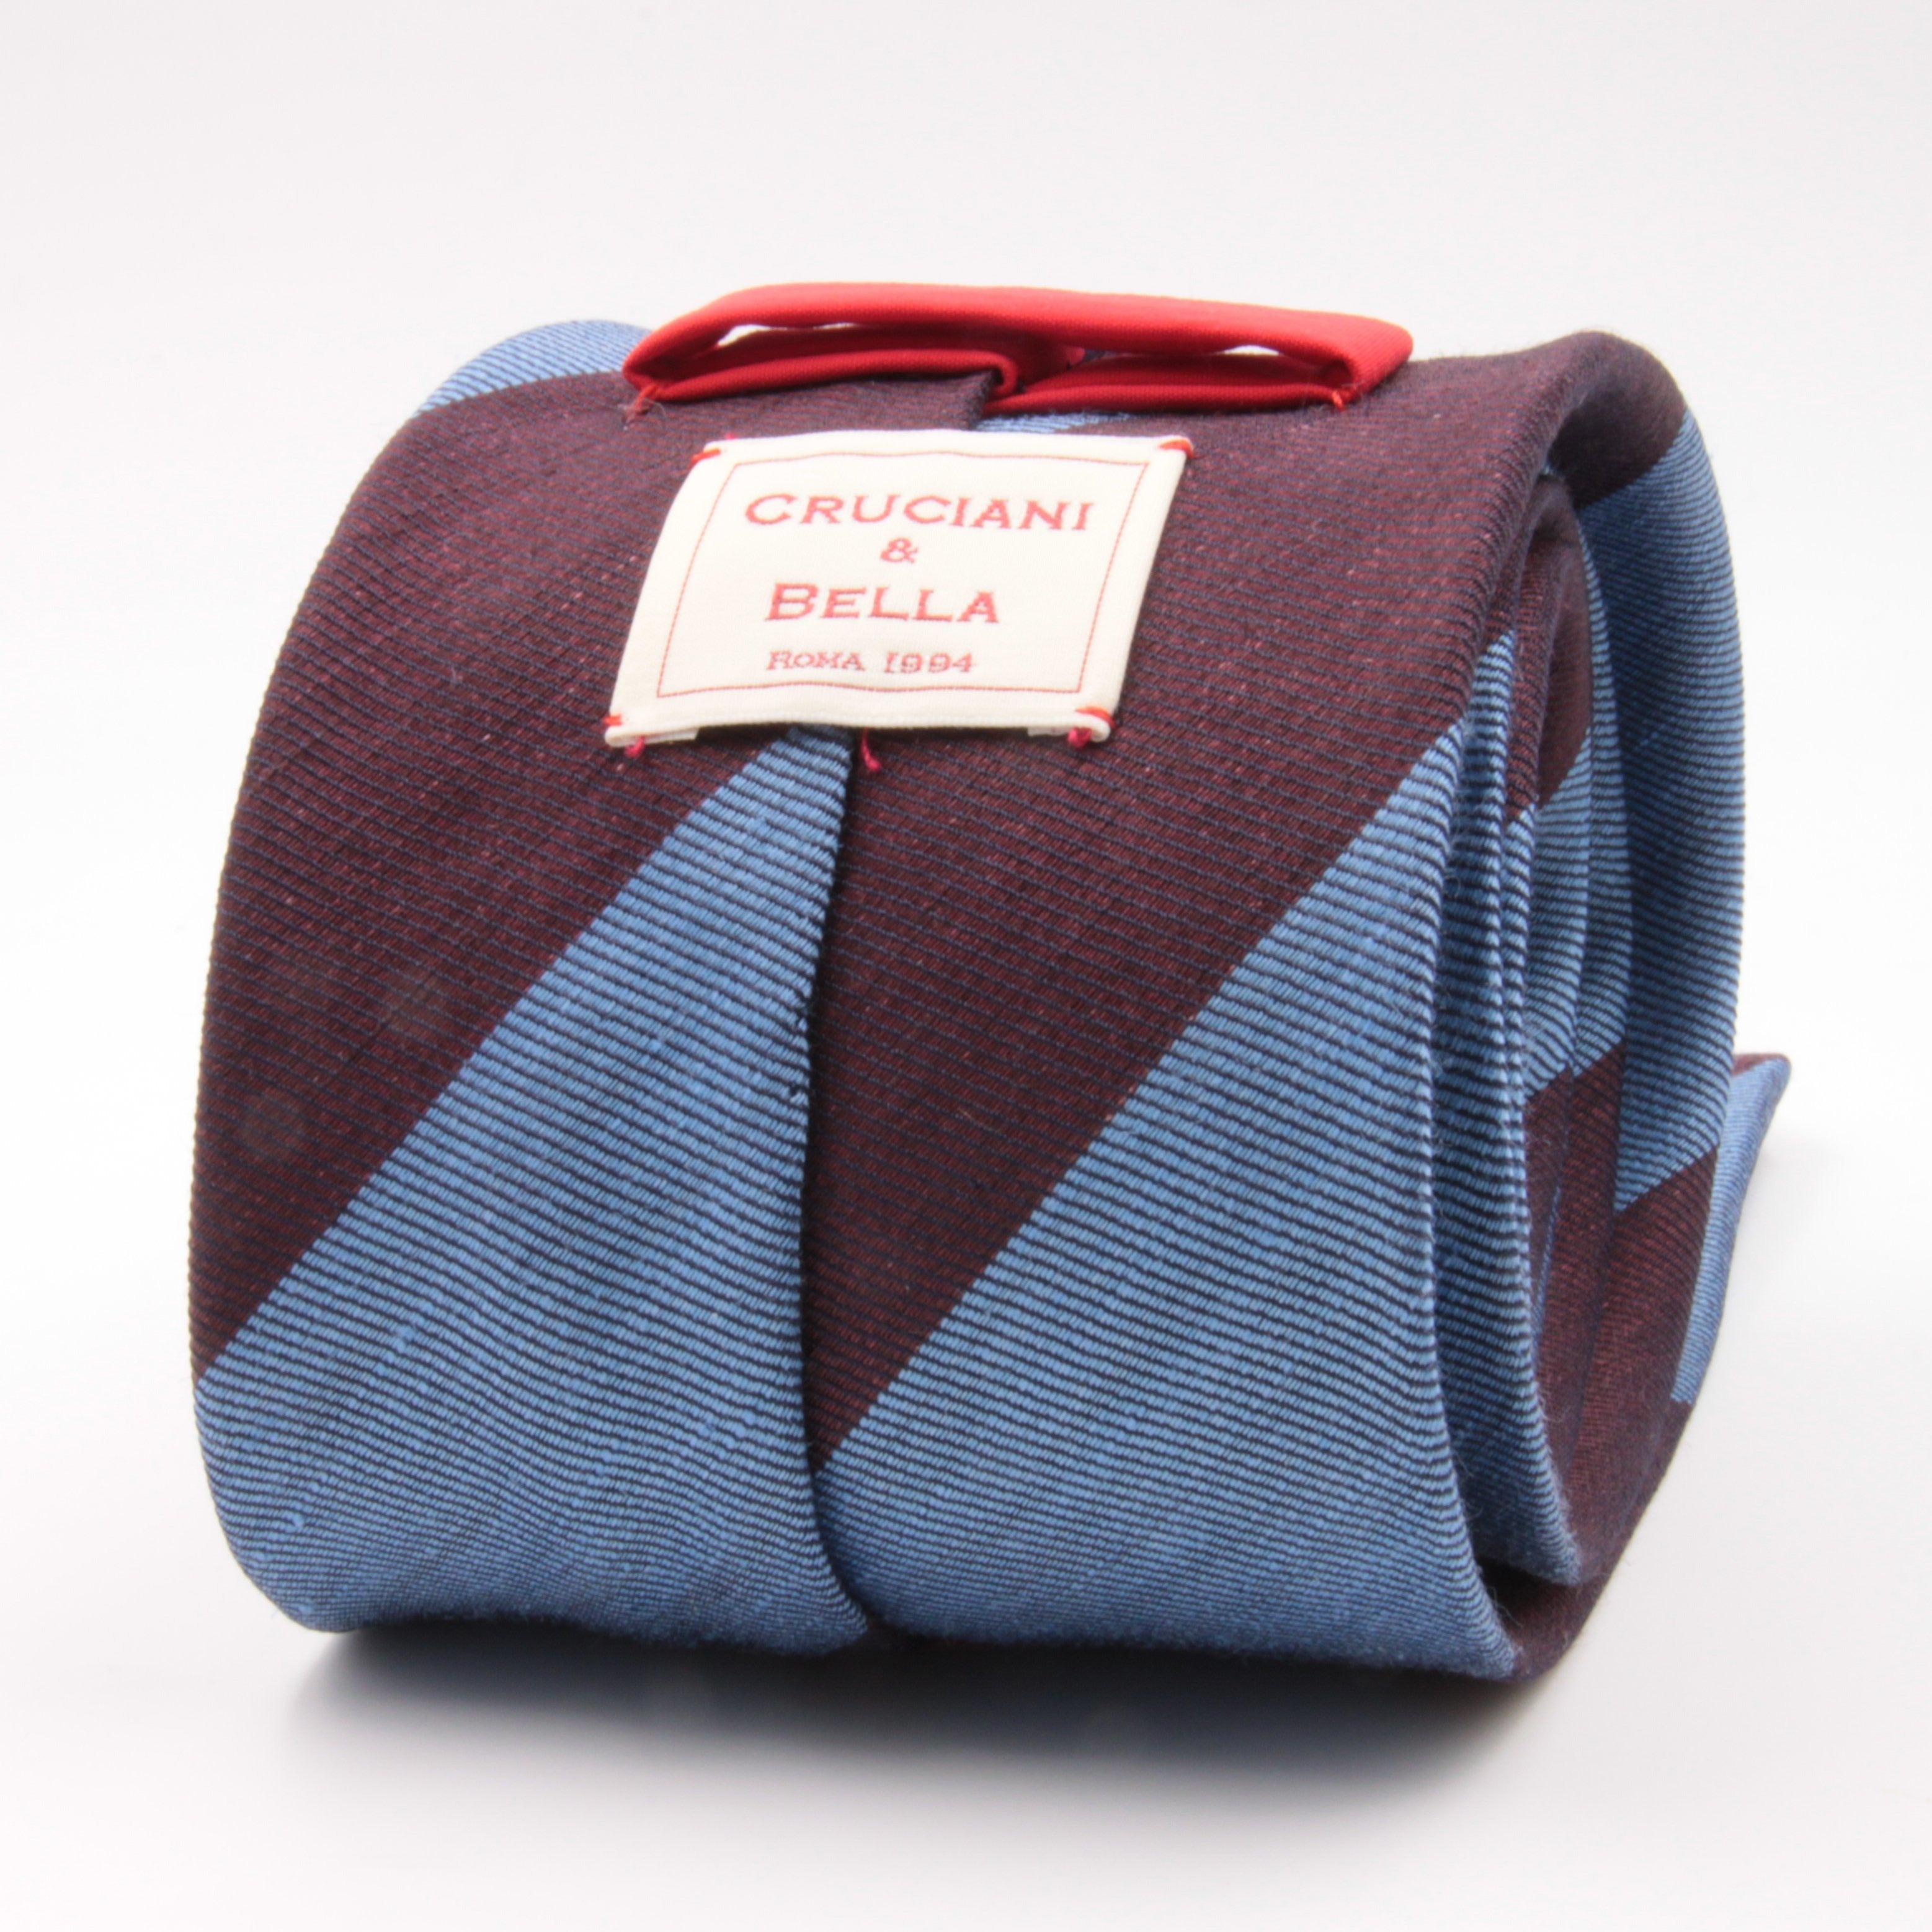 Cruciani & Bella 60% Linen, 40% Silk  Italian fabric Unlined Blue and Burgundy unlined stripe tie Handmade in Italy 8 cm x 150 cm